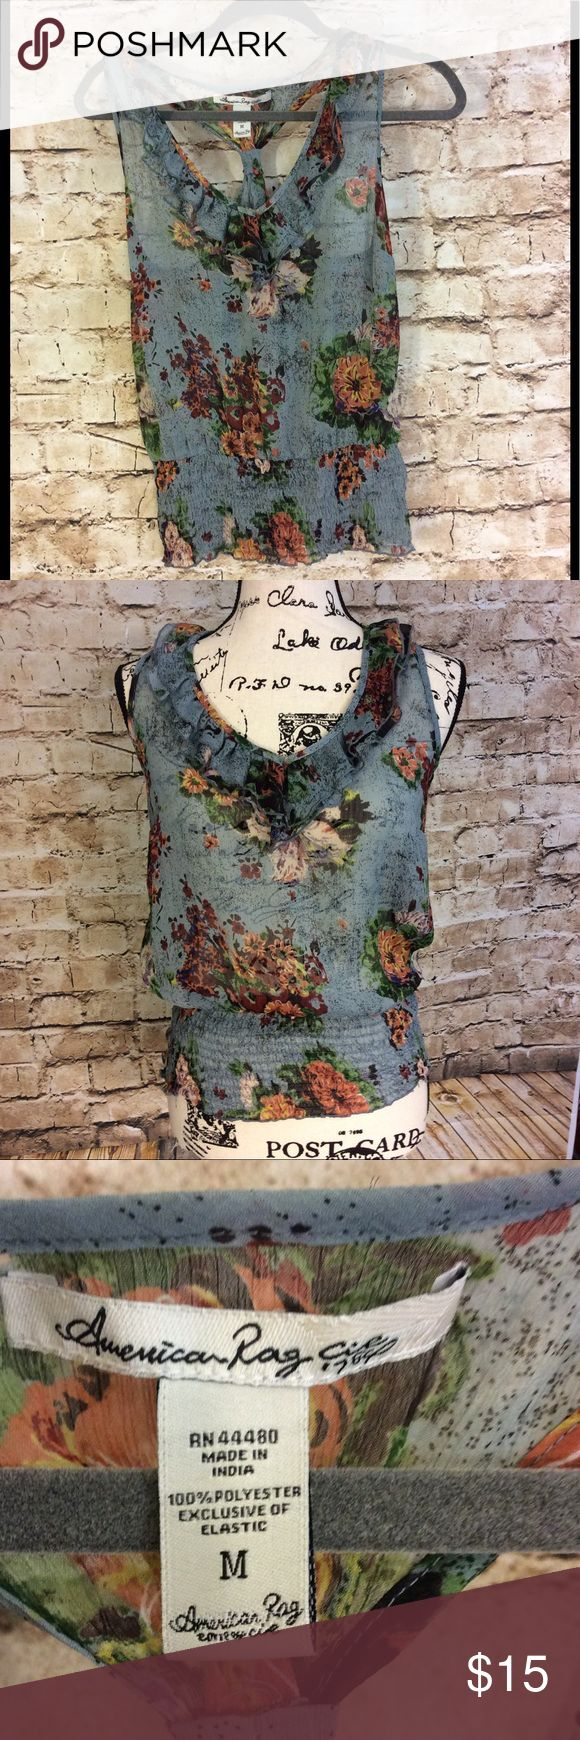 American rag sheer floral v-neck floral top Gently used American rag V-neck racer back double ruffle at neckline elastic tube waist band Sheer Length from top to bottom is 24 inches Armpit to armpit 17 inches Waist  14 stretches up the 21 Inches American Rag Tops Crop Tops